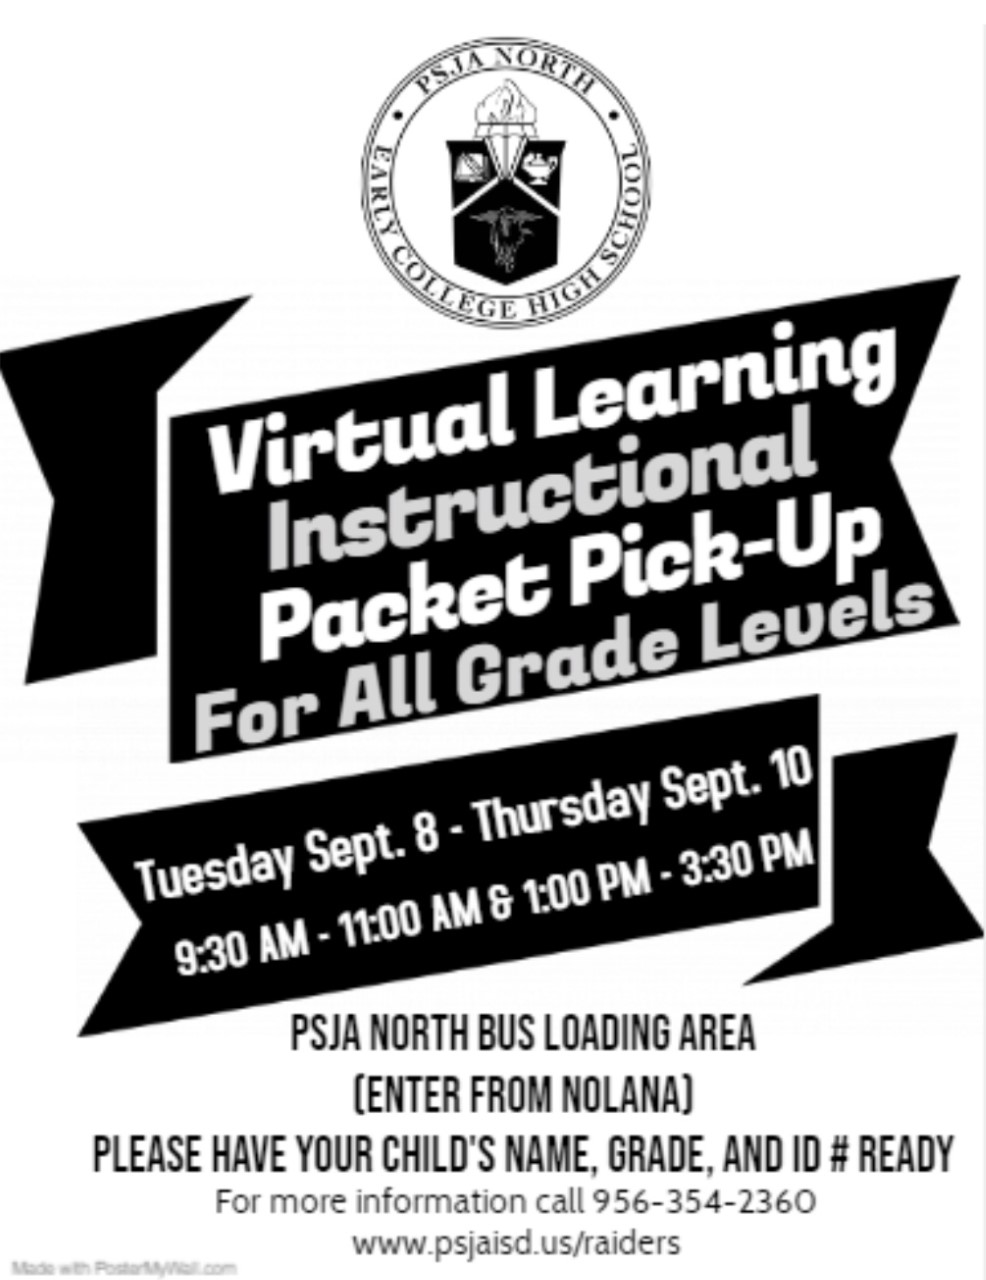 Virtual Learning Instructional Packet Pick-Up